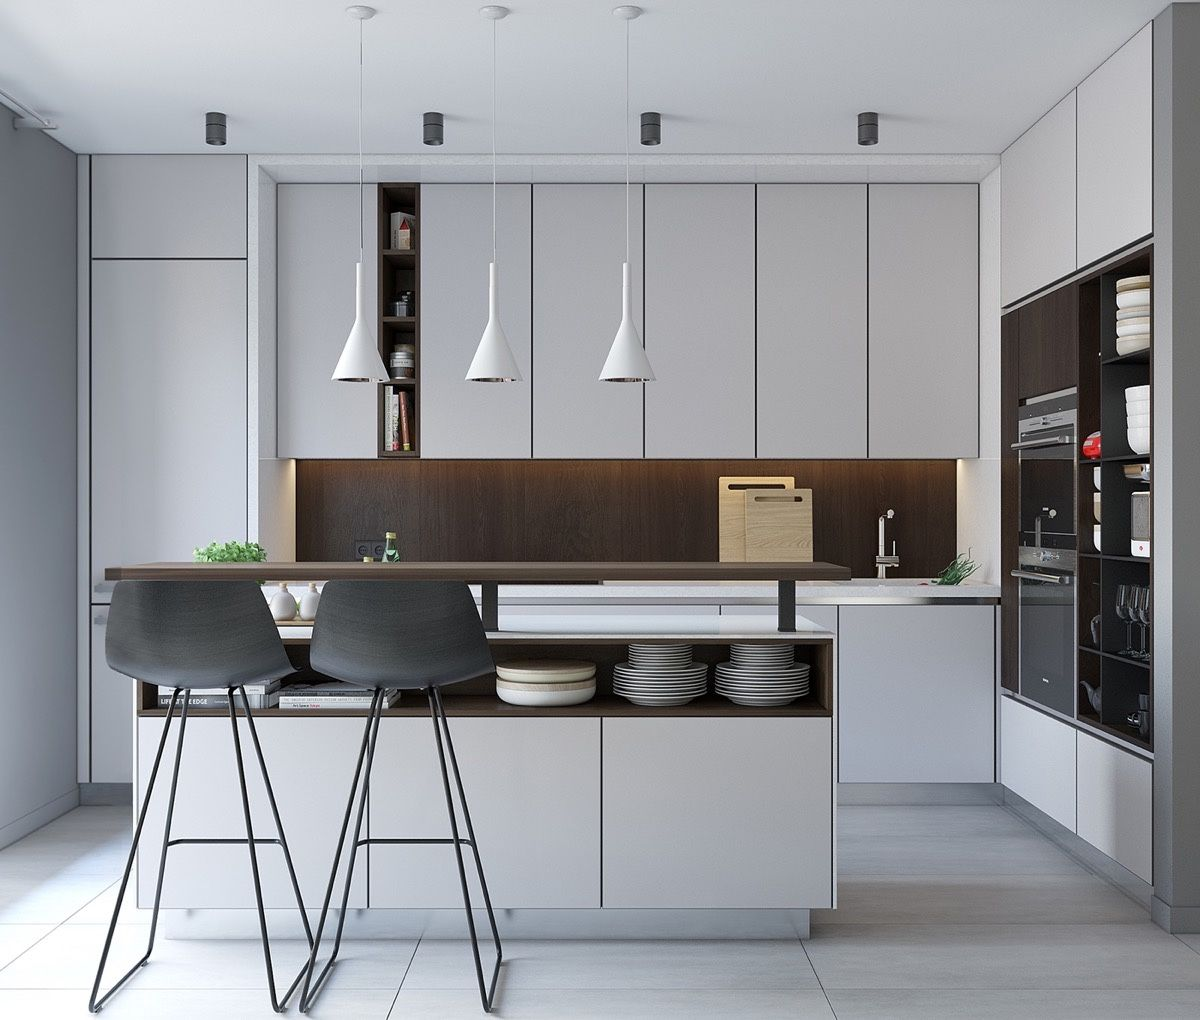 25 Minimalist Kitchens To Get Super Sleek Inspiration Minimalist - Interior-designed-kitchens